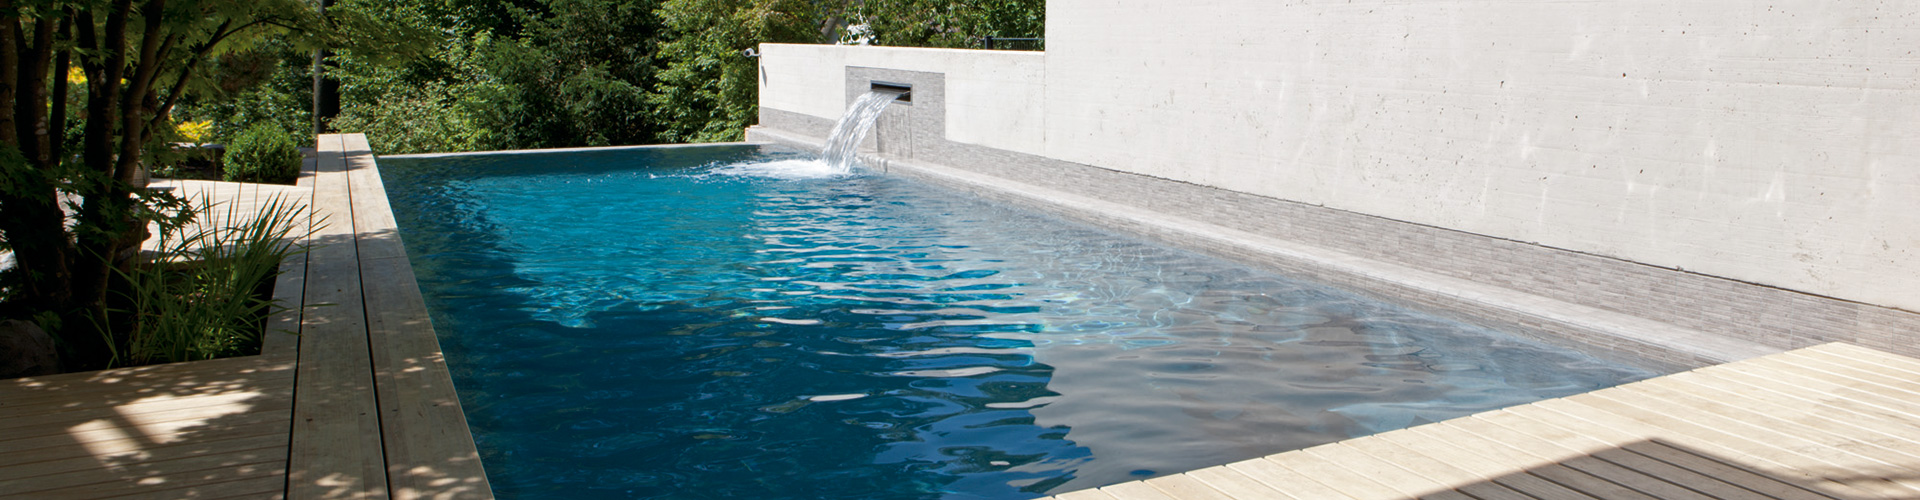 Piscine polyester gamme d line centerspas for Piscine coque polyester martinique